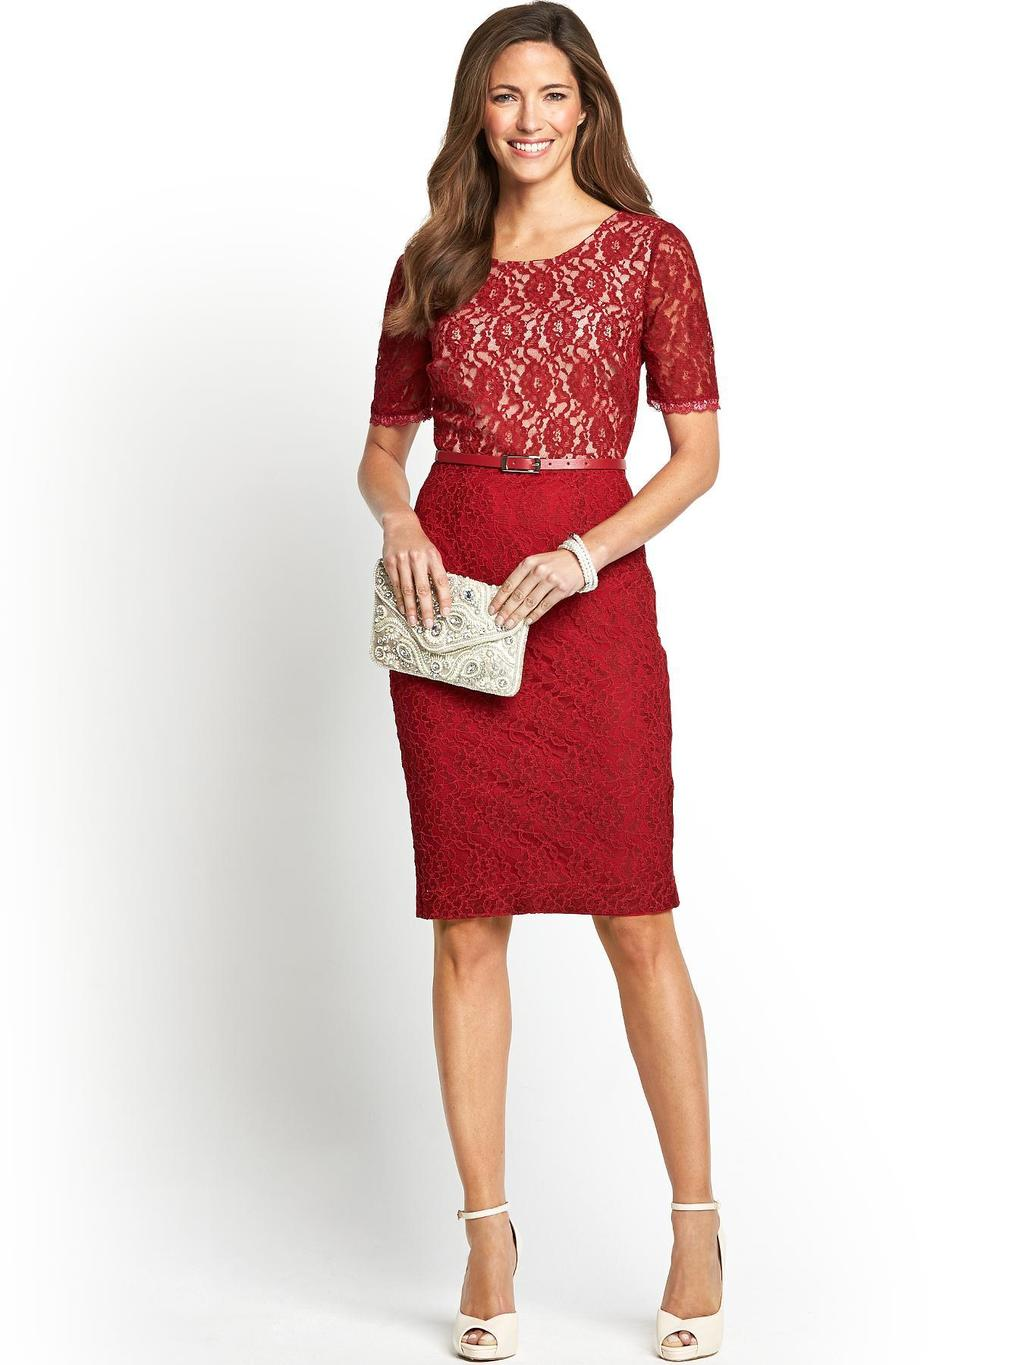 Lace Pencil Dress - style: shift; neckline: round neck; fit: tailored/fitted; waist detail: belted waist/tie at waist/drawstring; predominant colour: true red; occasions: evening, occasion; length: on the knee; fibres: cotton - mix; bust detail: contrast pattern/fabric/detail at bust; sleeve length: short sleeve; sleeve style: standard; texture group: lace; pattern type: fabric; pattern: patterned/print; season: a/w 2014